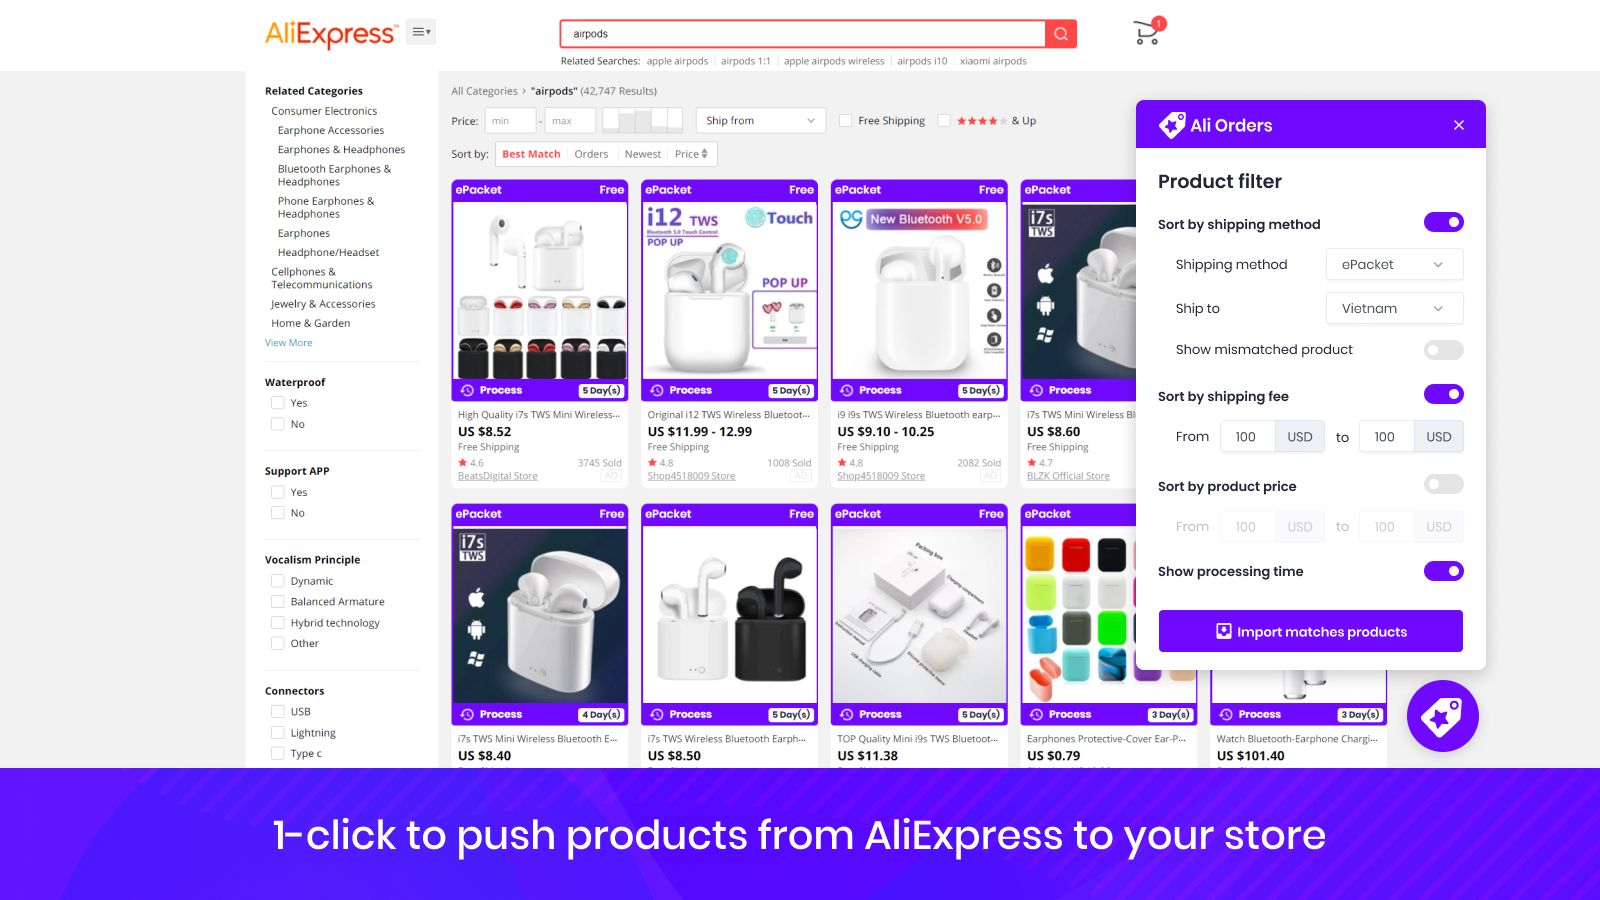 Ali Orders ePacket Product Filter for Dropshipping